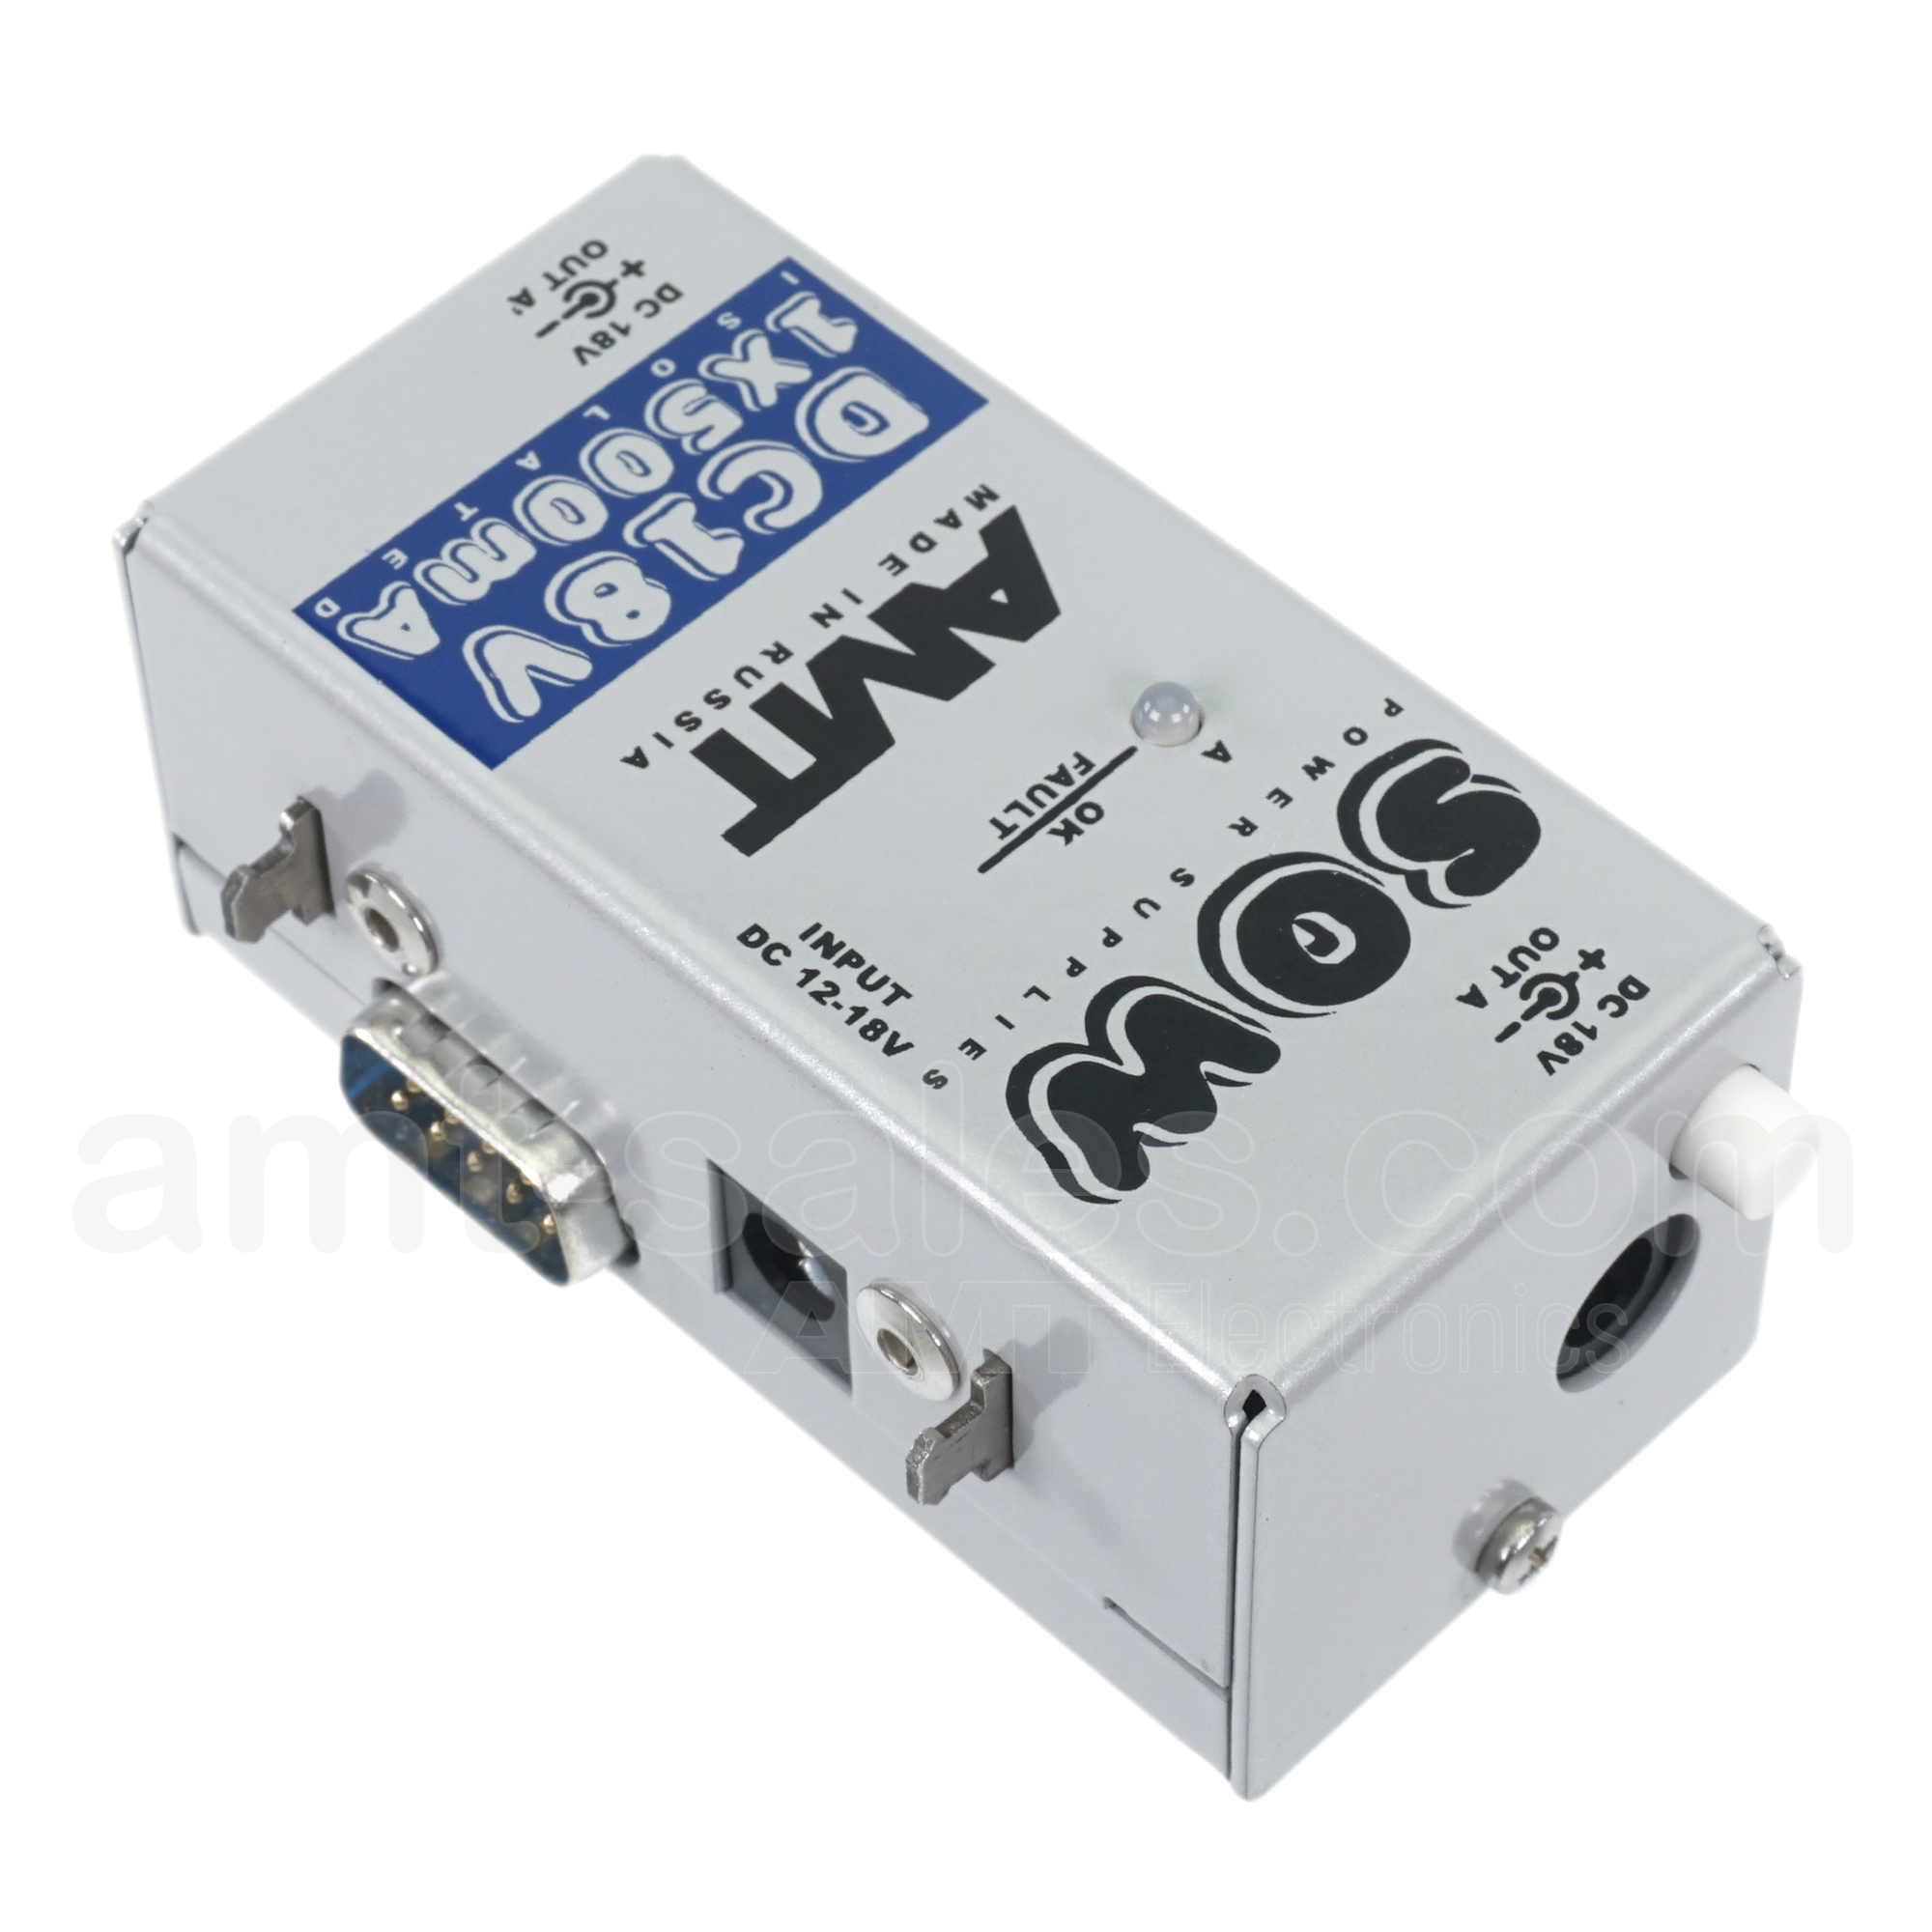 AMT SOW PS DC-18V 1x500mA - power supply module